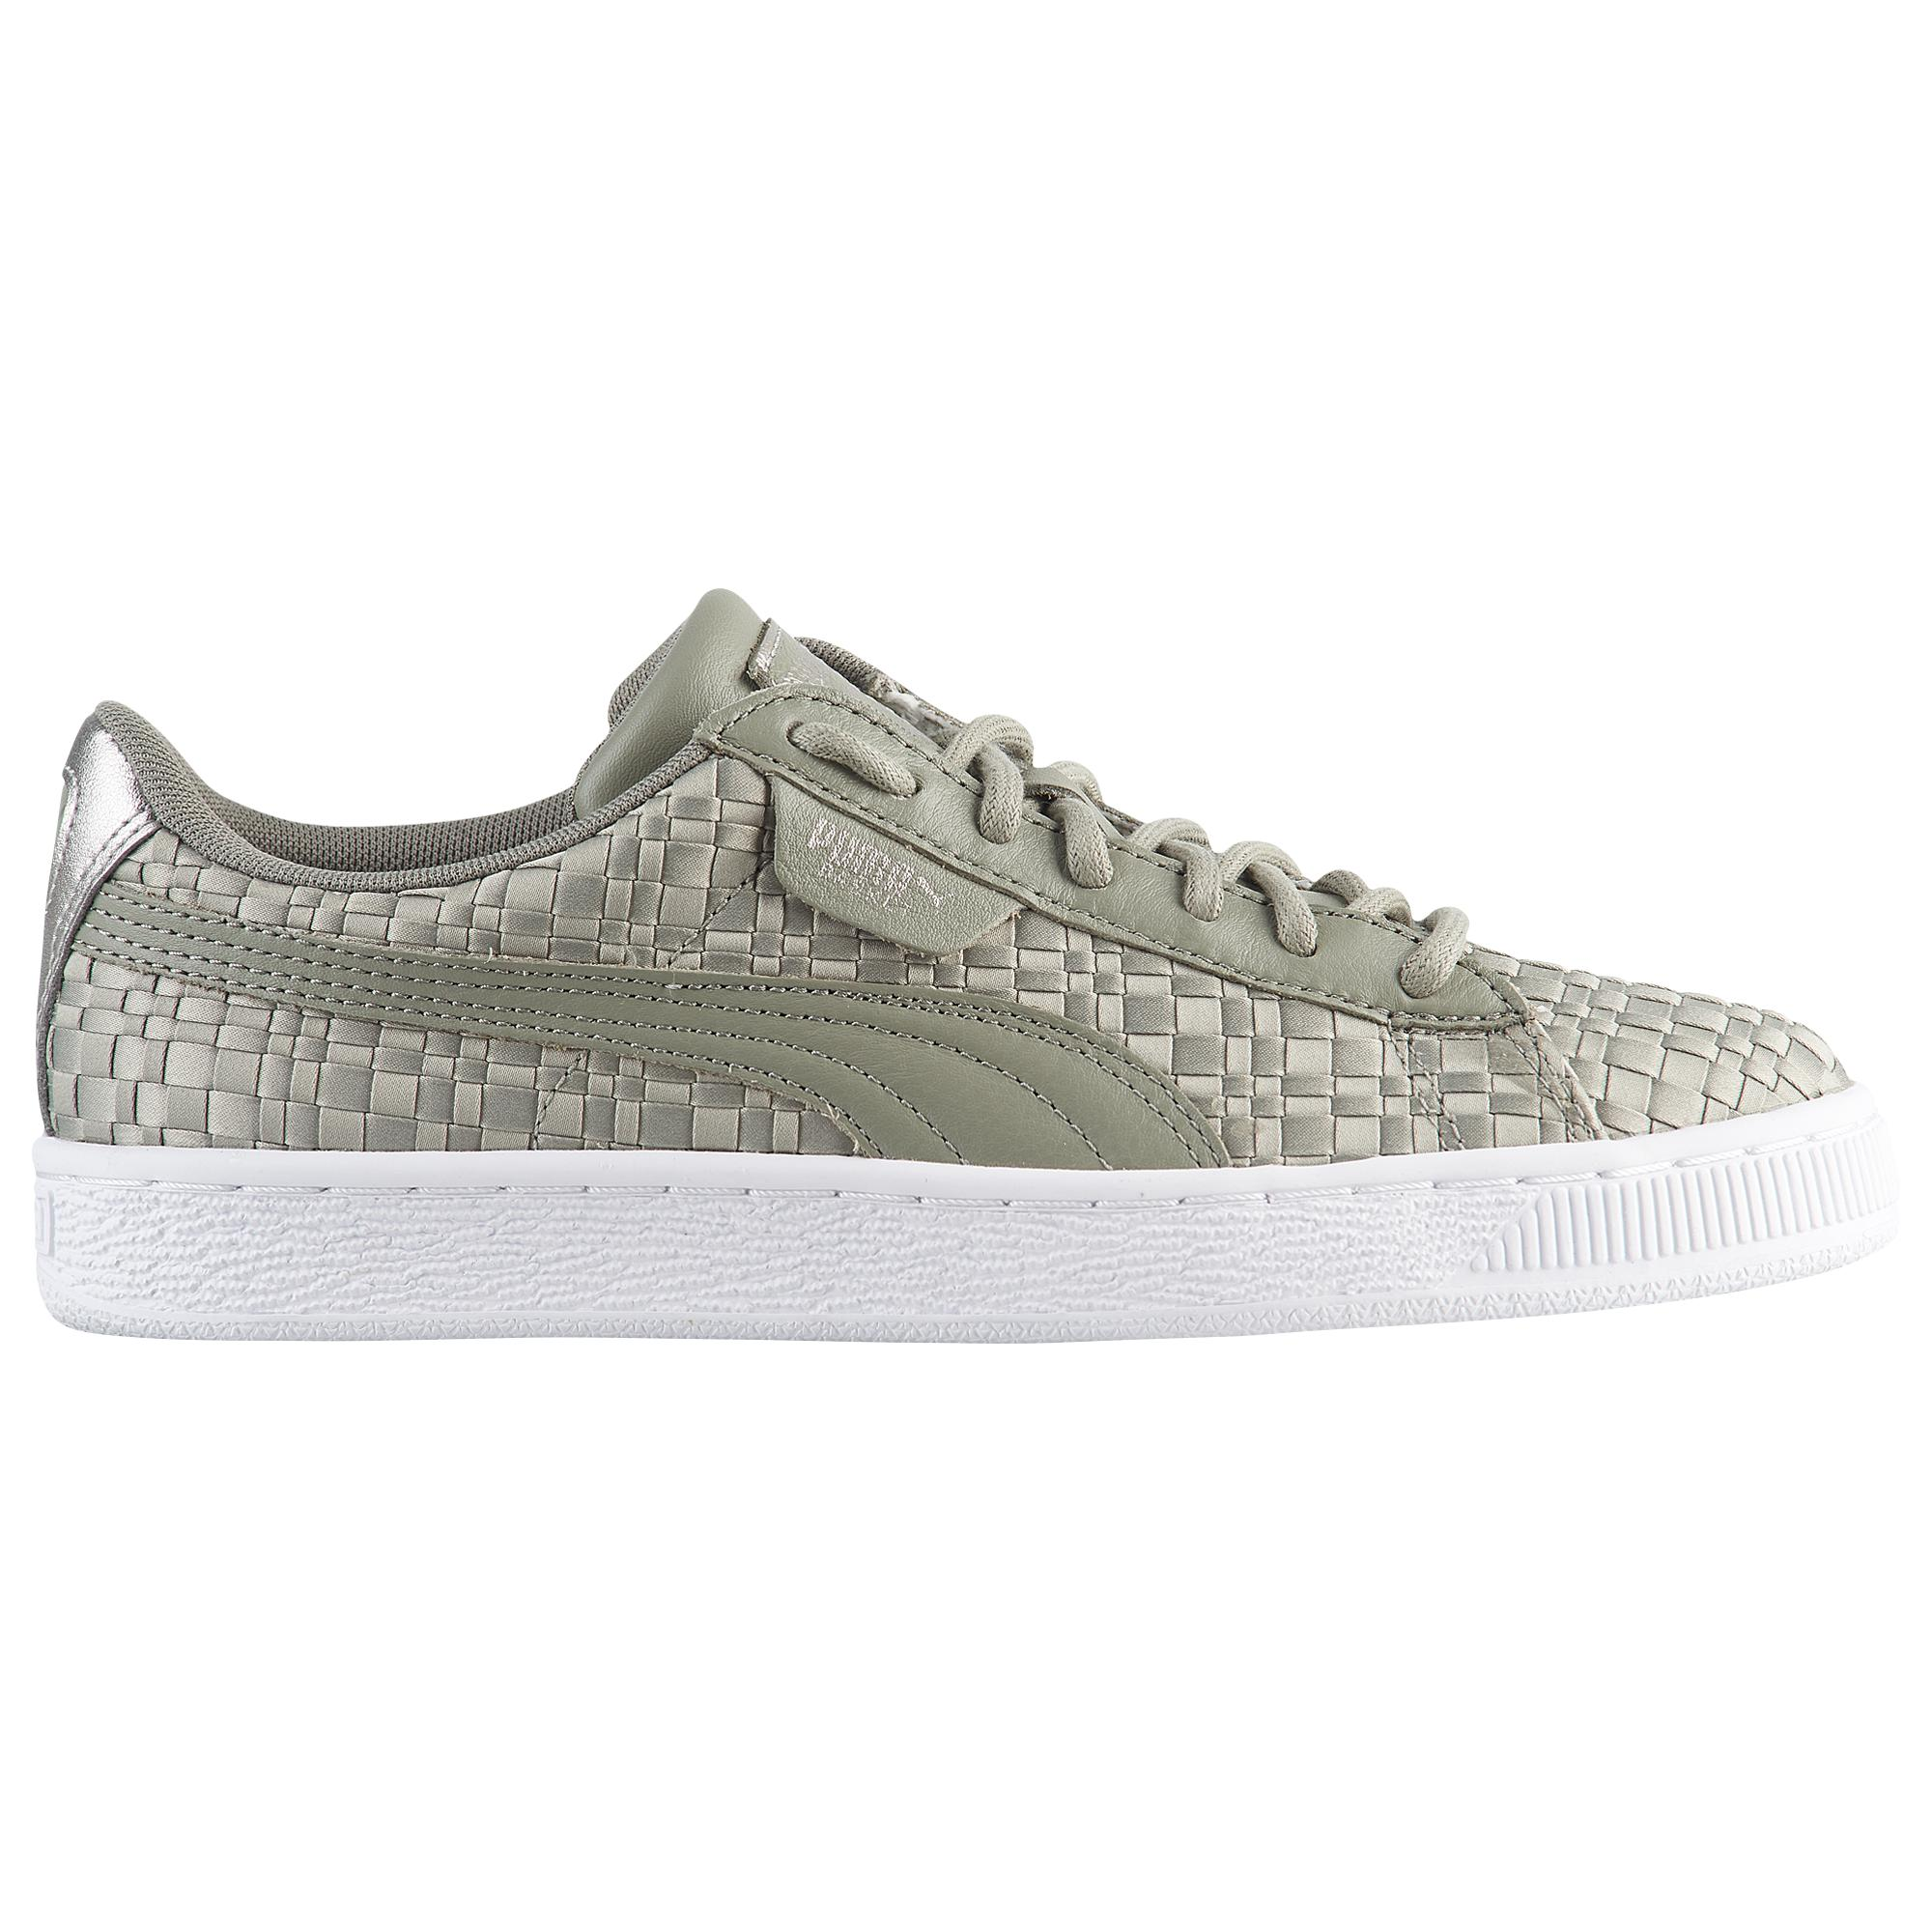 Lyst - Puma Basket Satin Woven in Gray for Men 2e7d39211